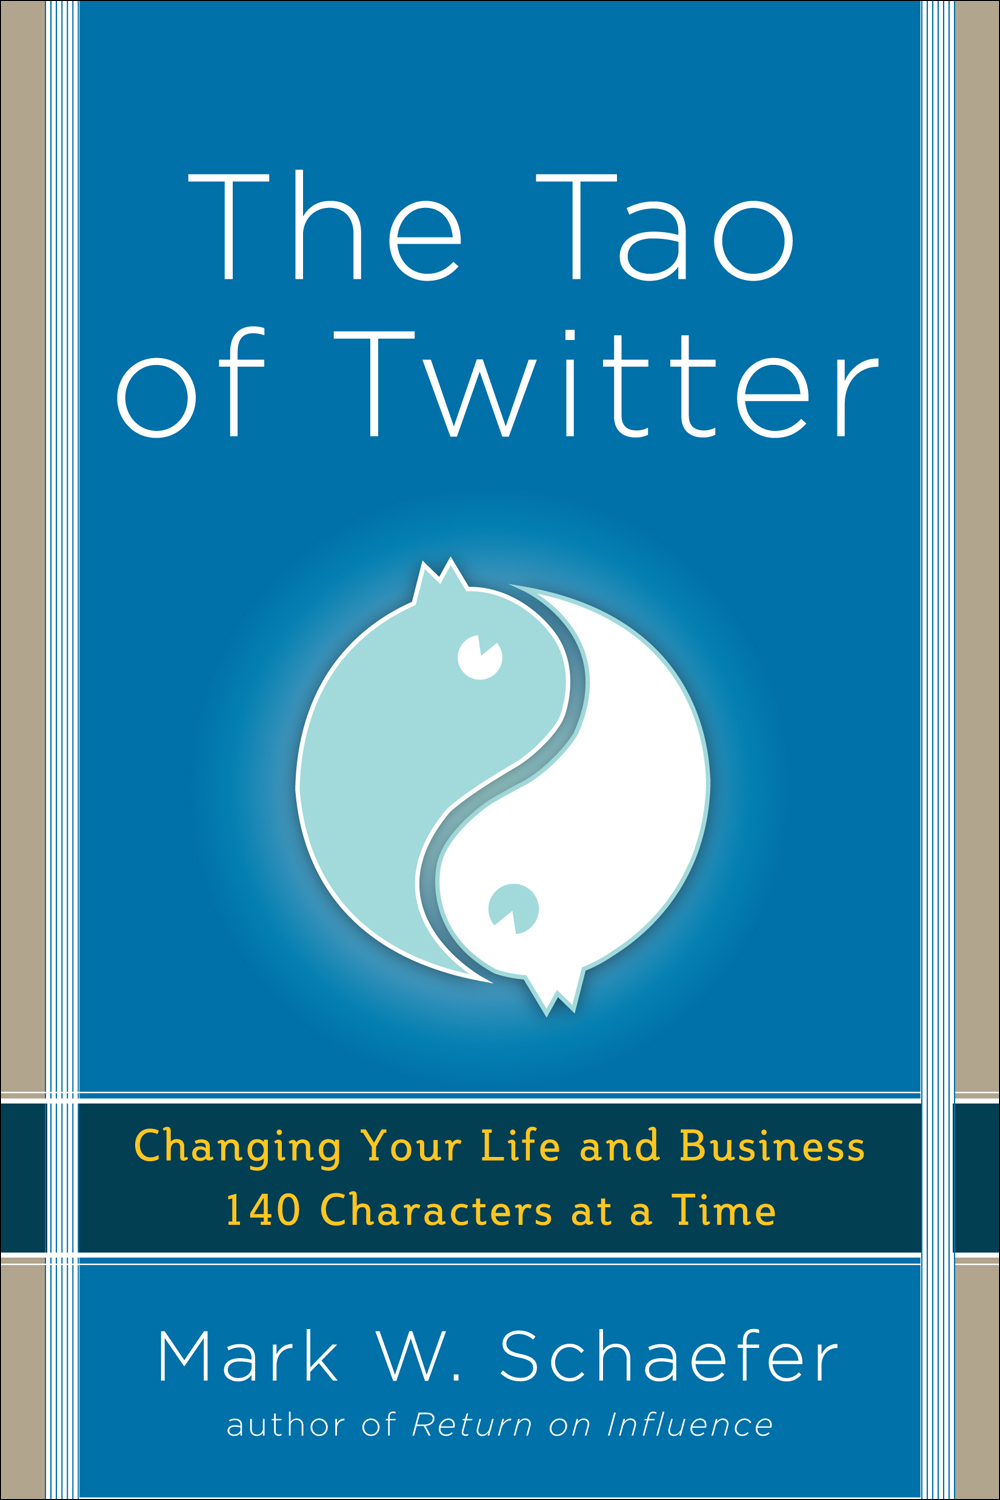 The Tao of Twitter